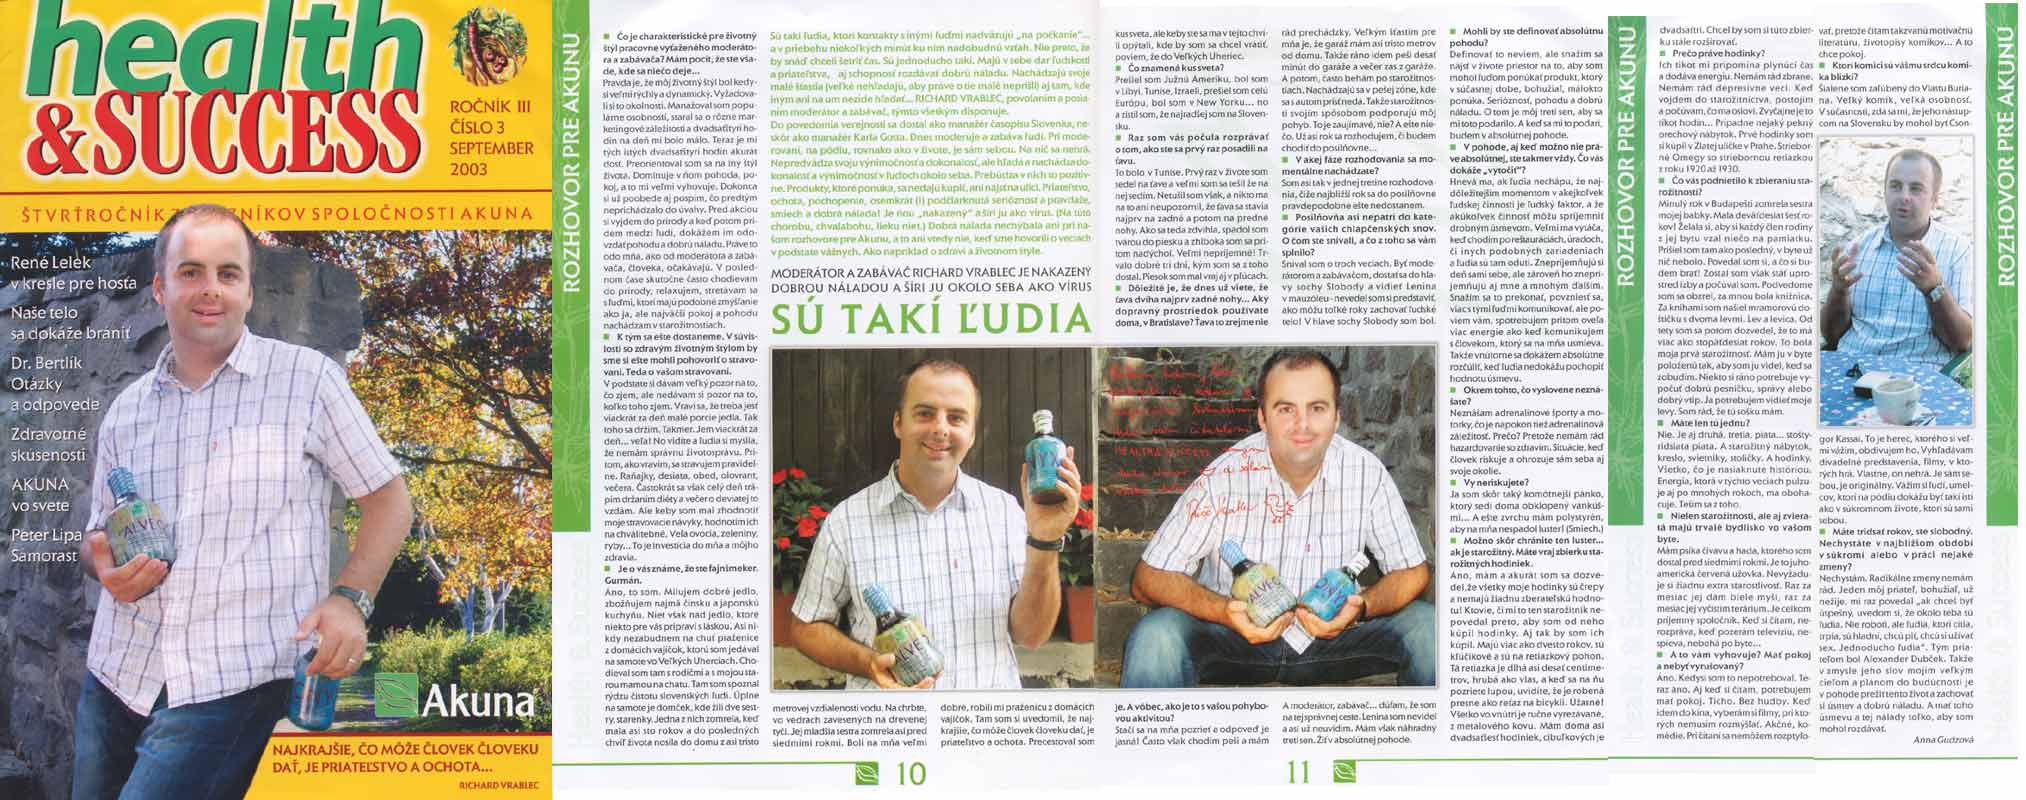 health & SUCCESS September 2003: Sú takí ludia